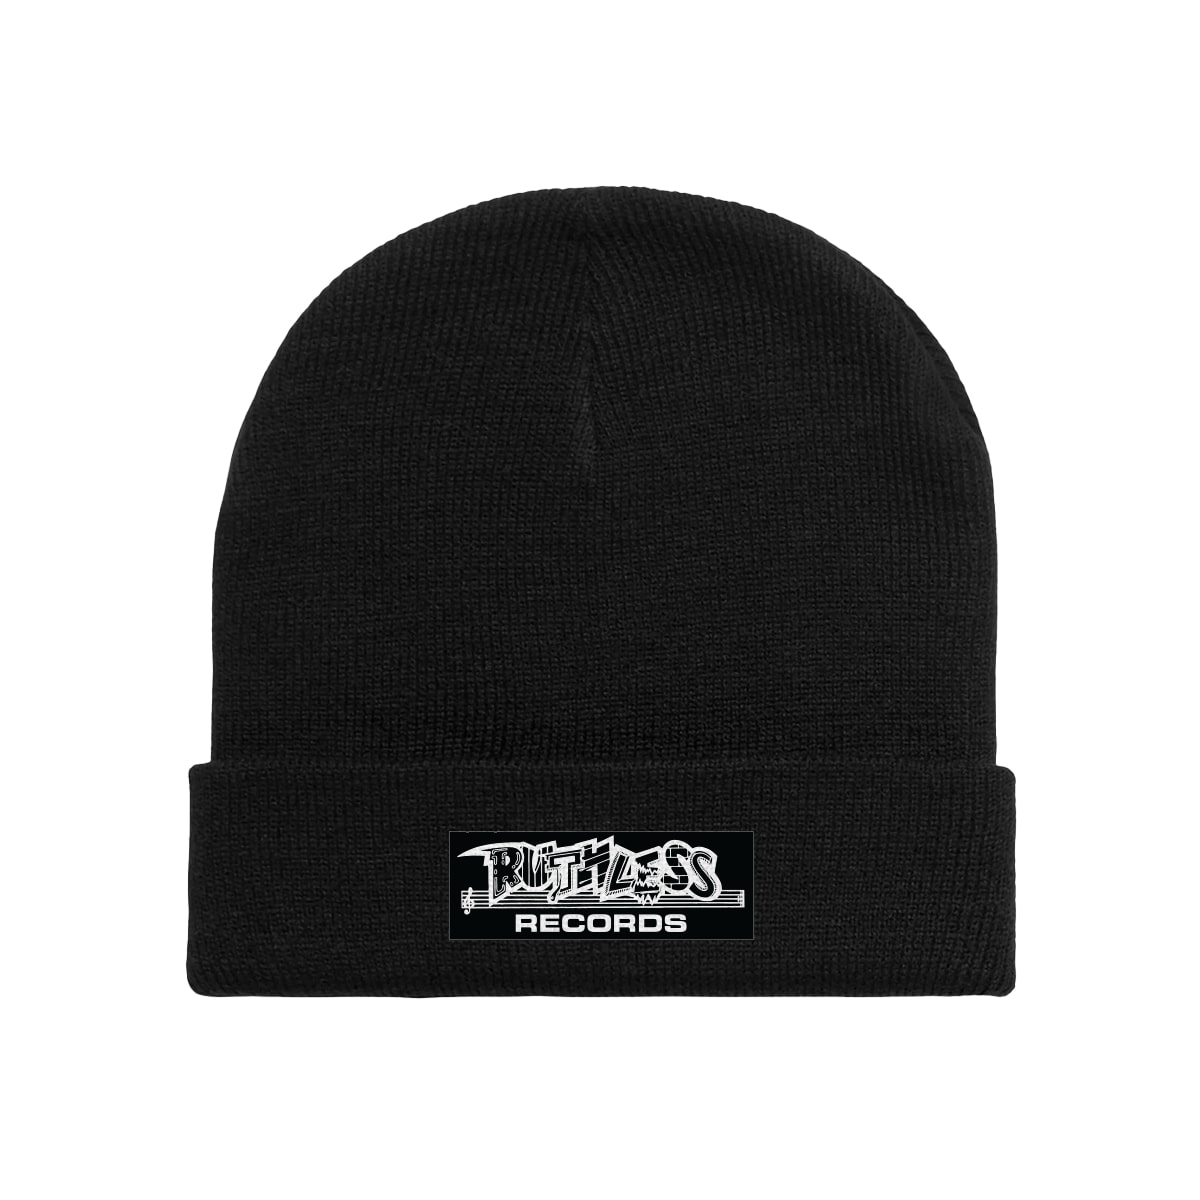 Ruthless Records Black Beanie